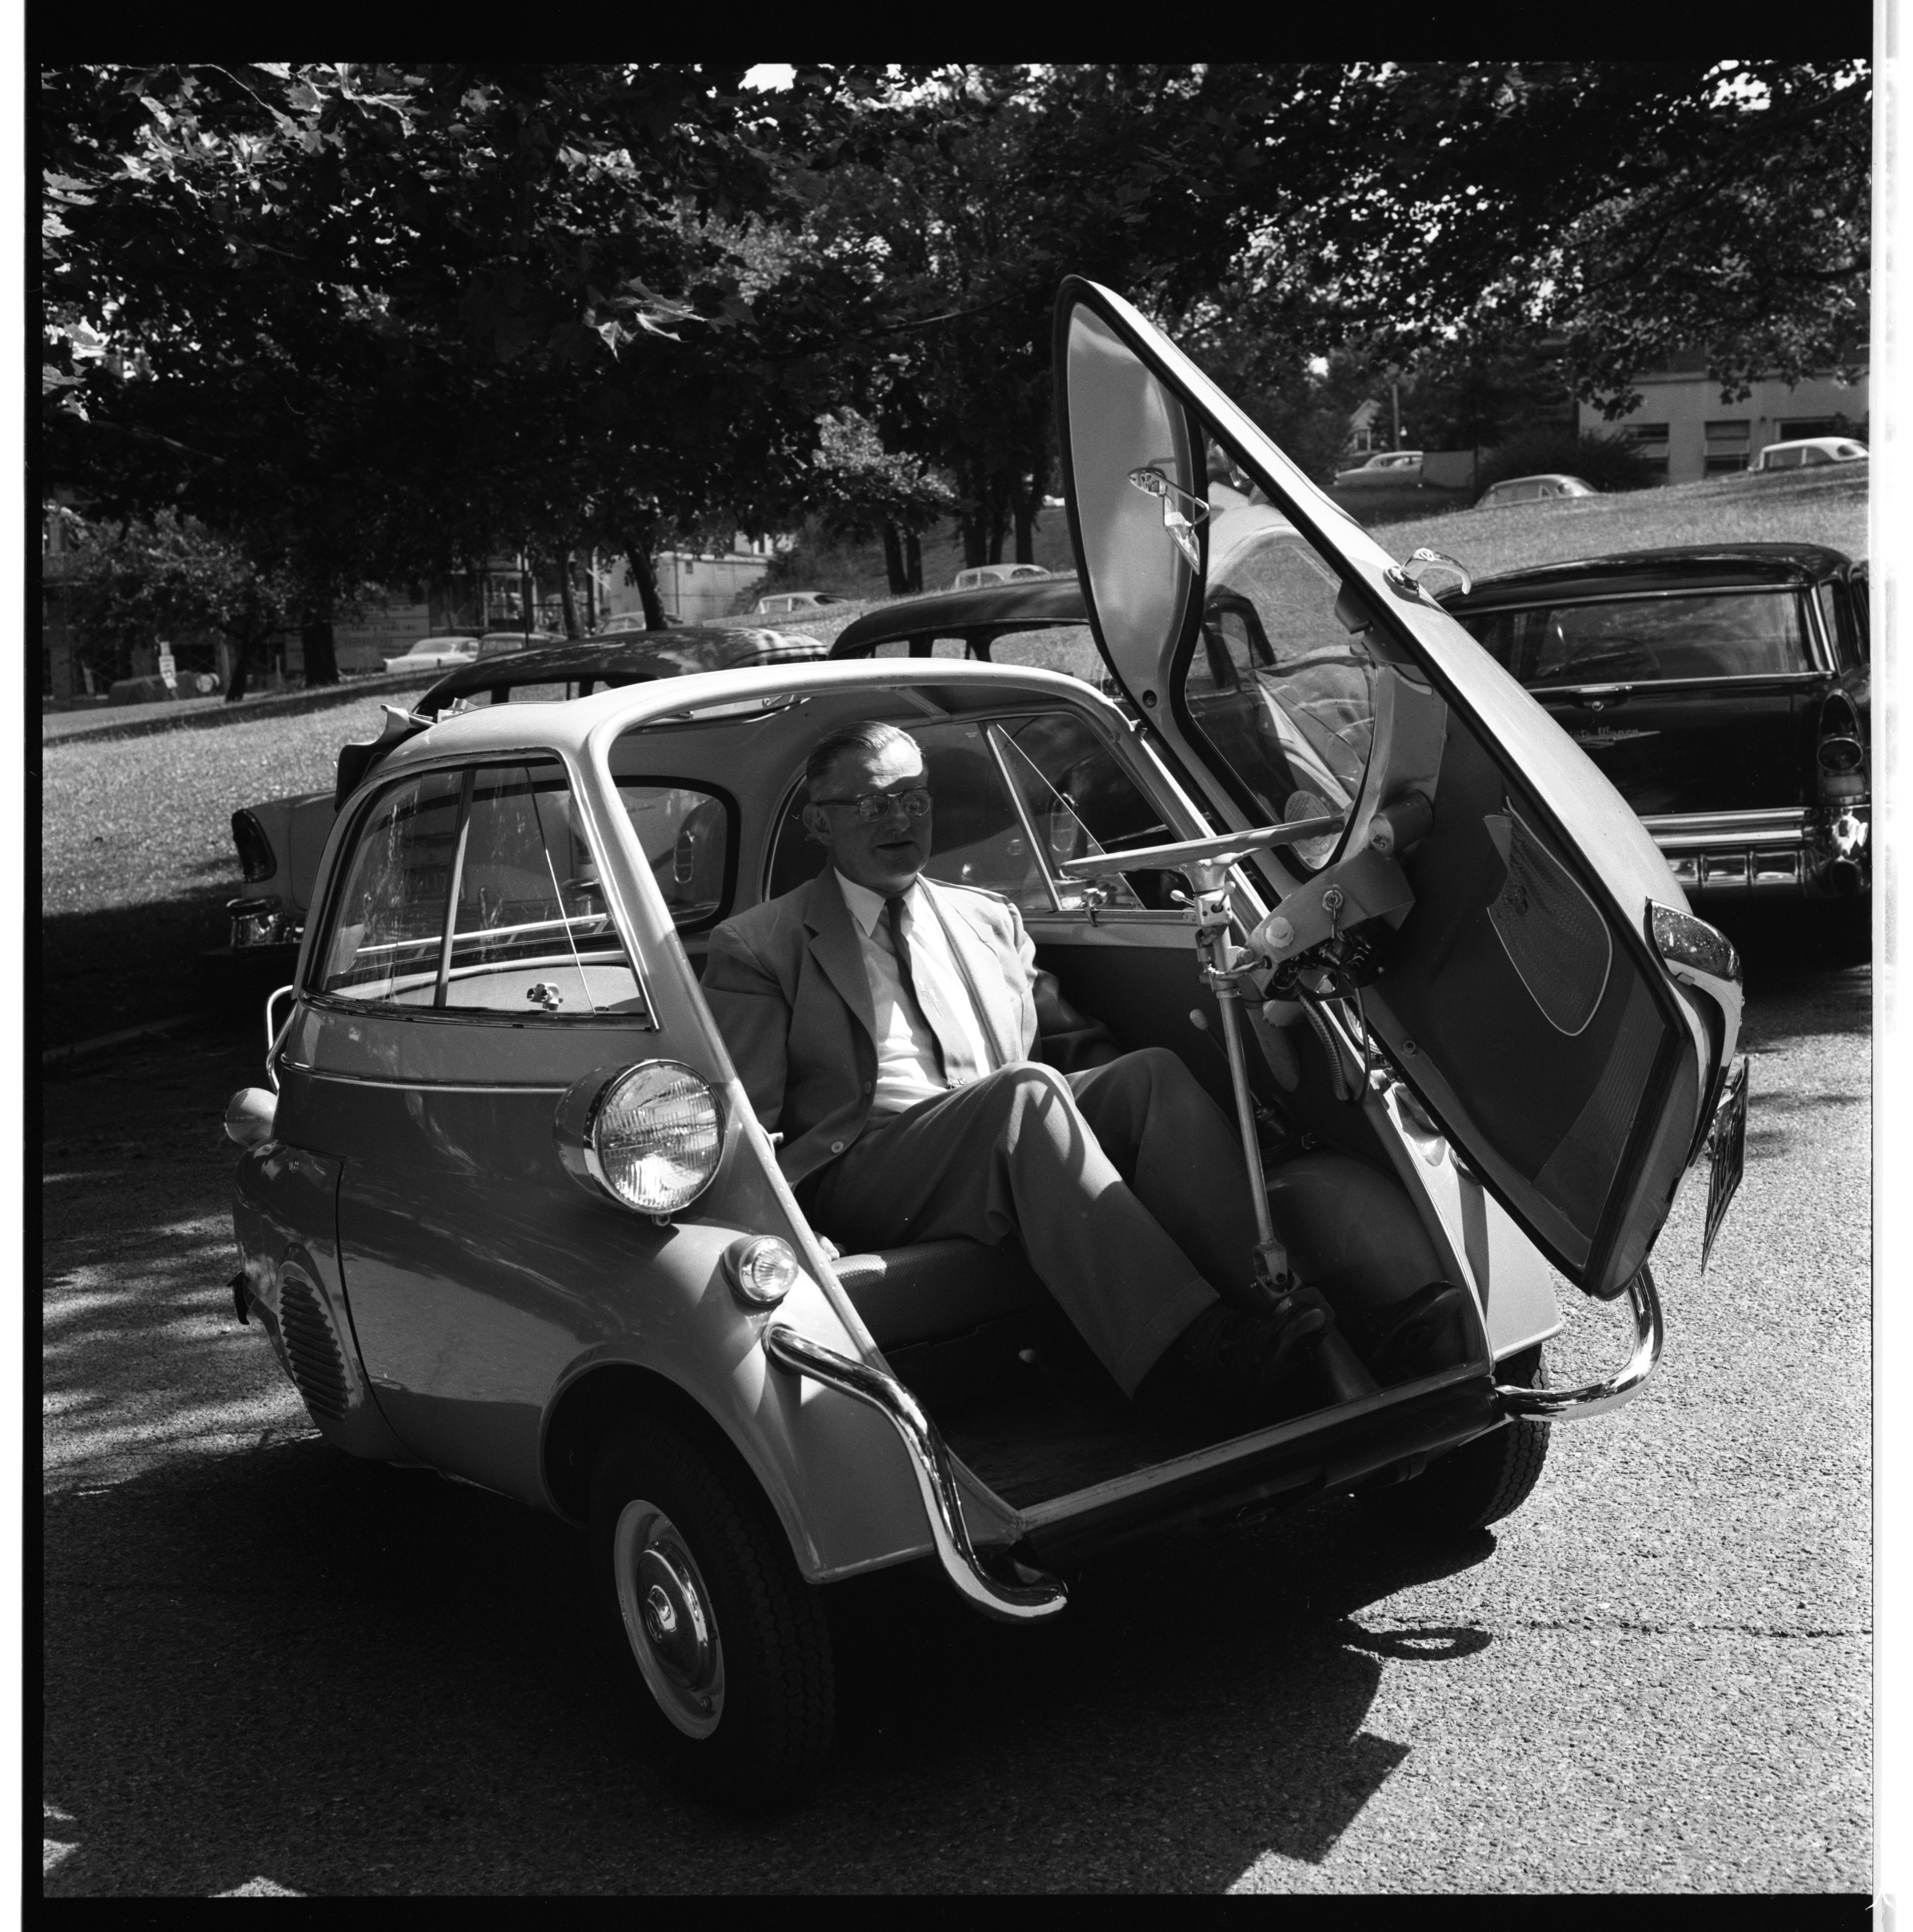 Dr. Frank H. Bethell and his Isetta, August 1957 image